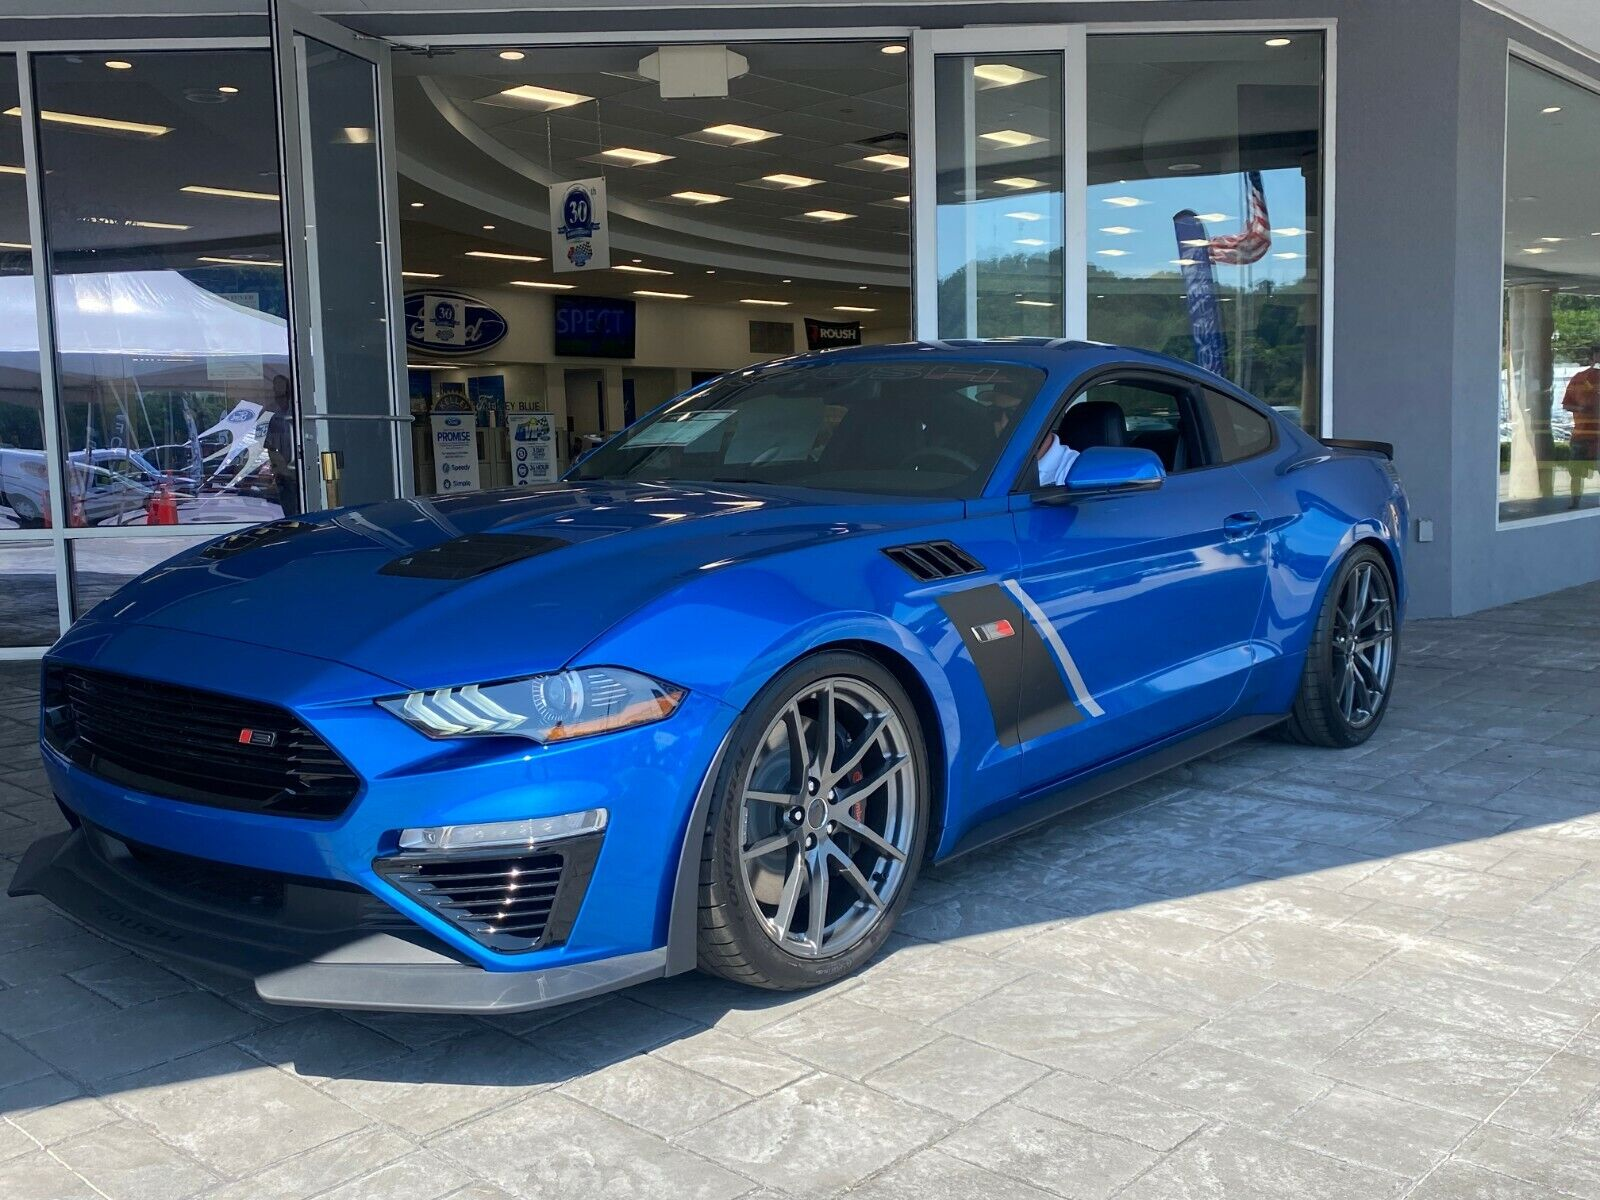 2021 FORD MUSTANG ROUSH STAGE 3 COUPE PHASE 2 EDITION 750 + HORSE POWER A+